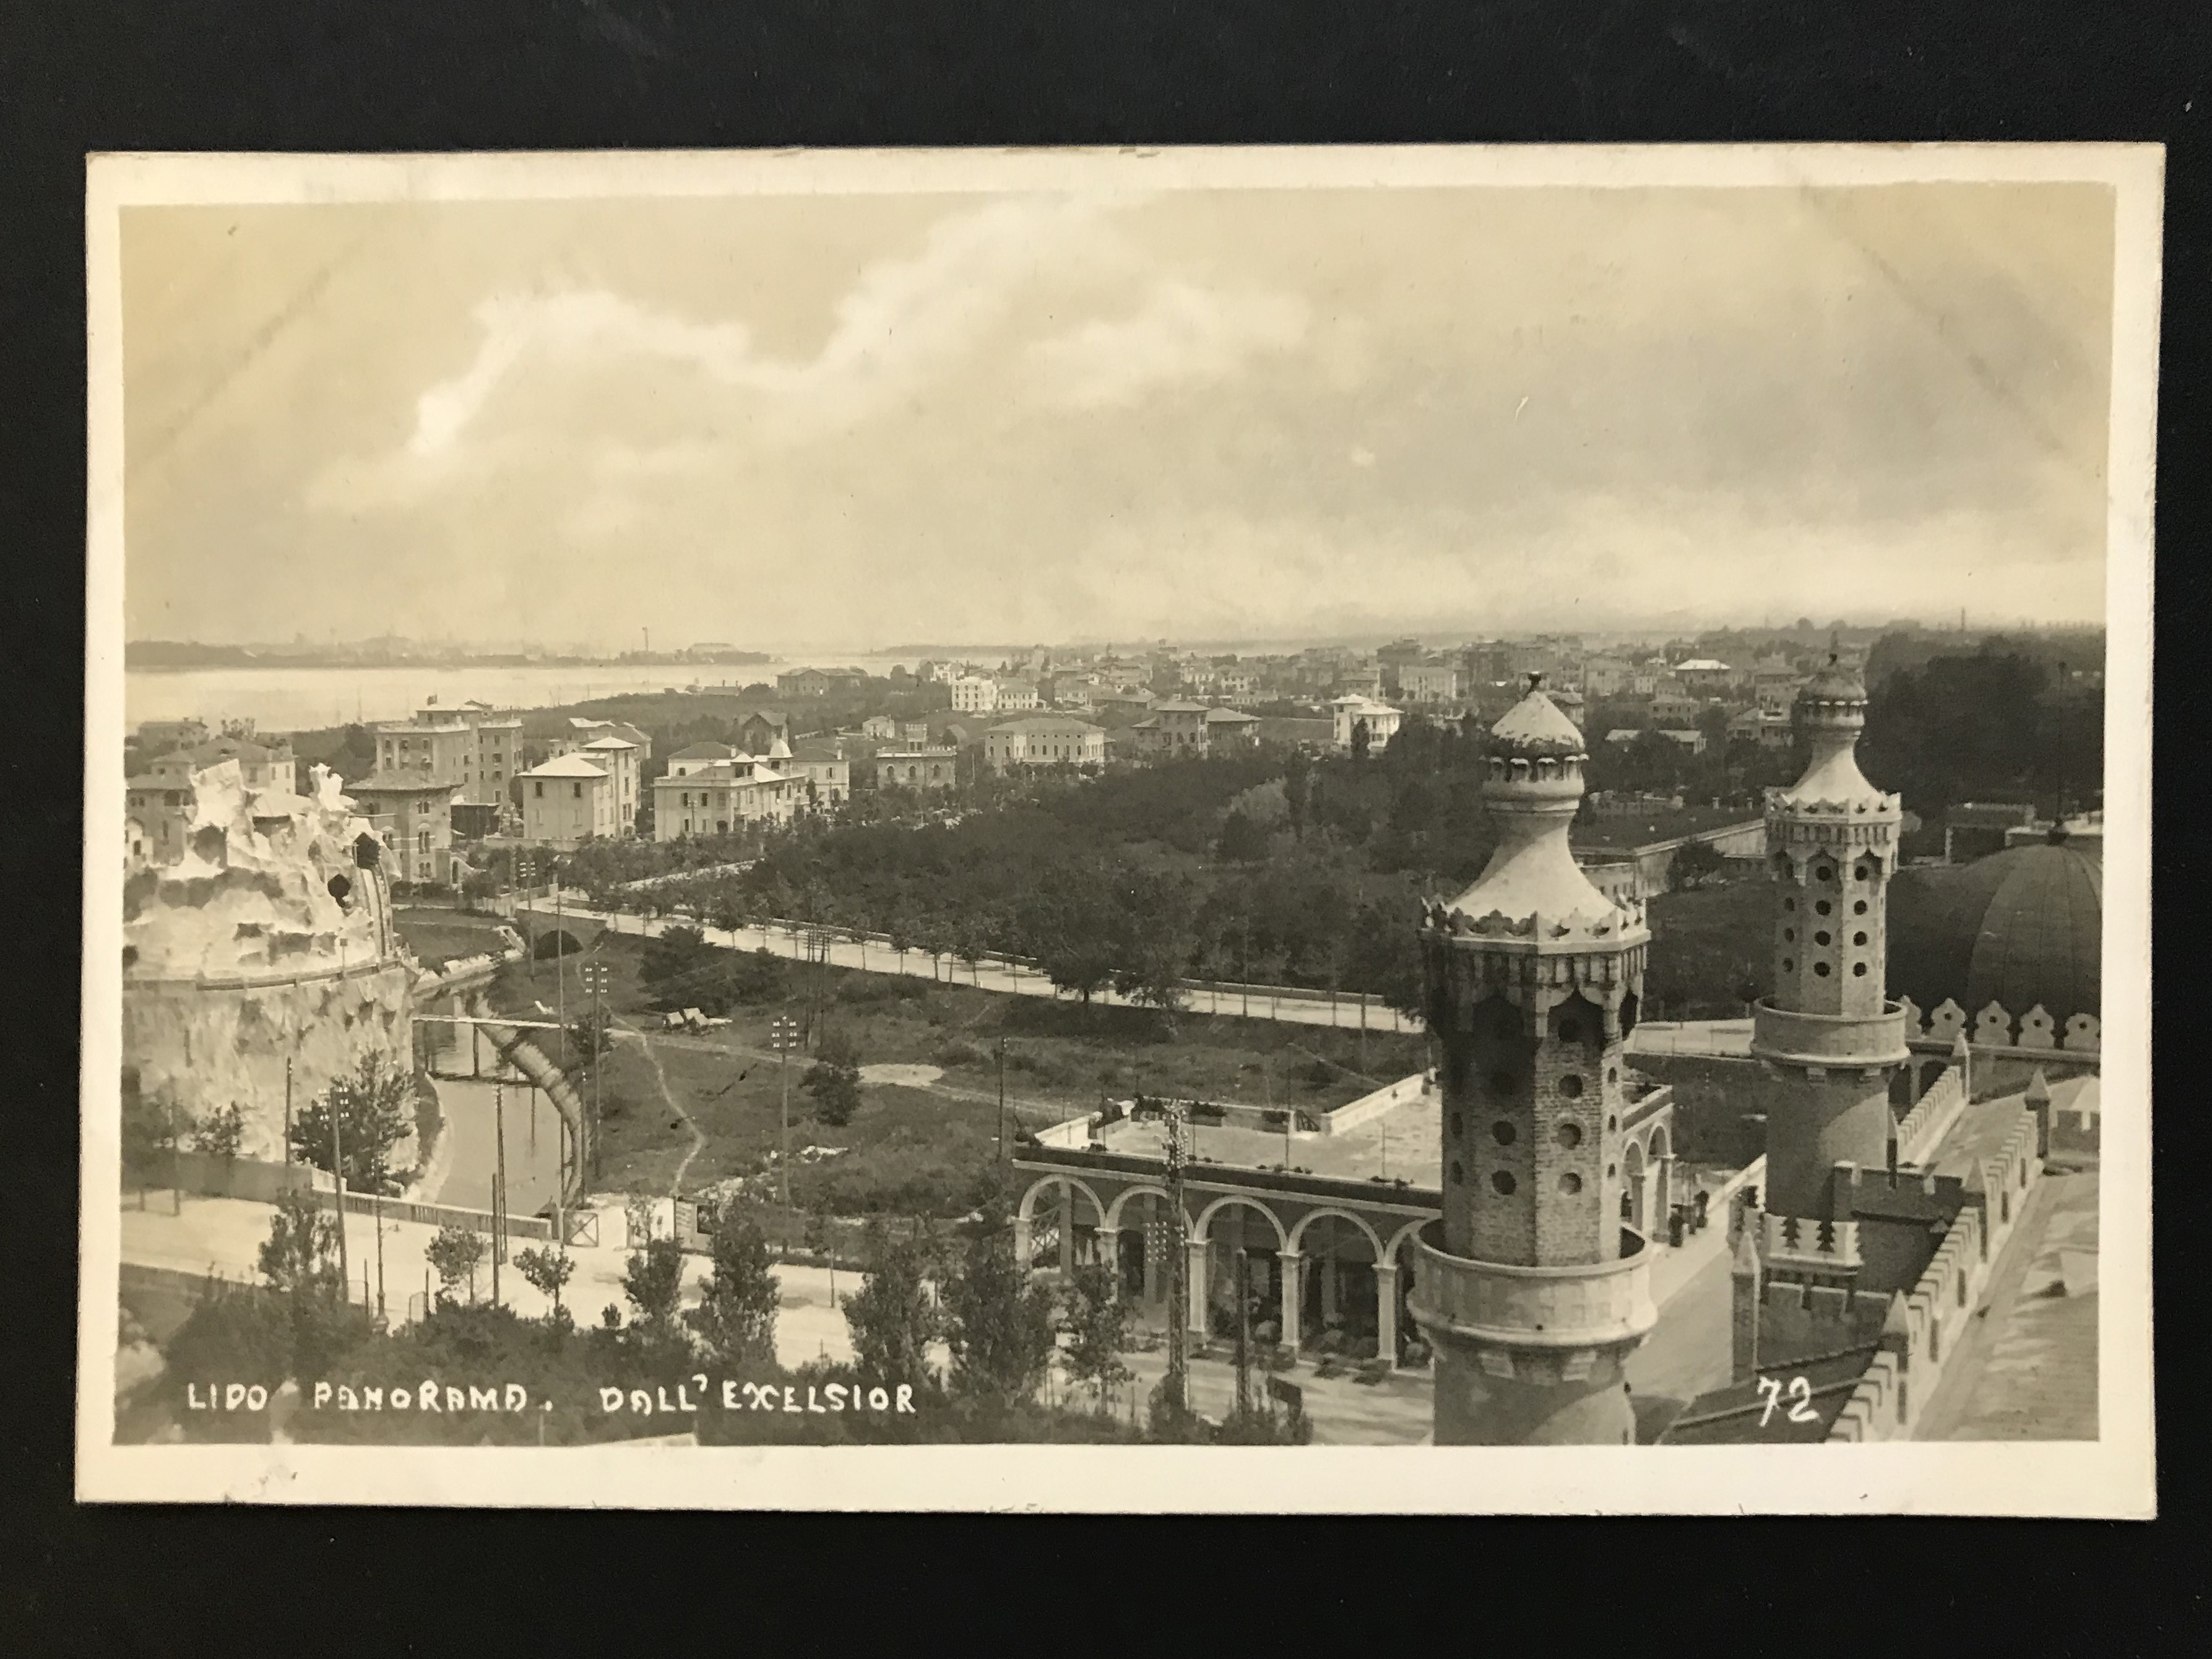 SELECTION OF VENICE RELATED POSTCARDS - Image 51 of 53